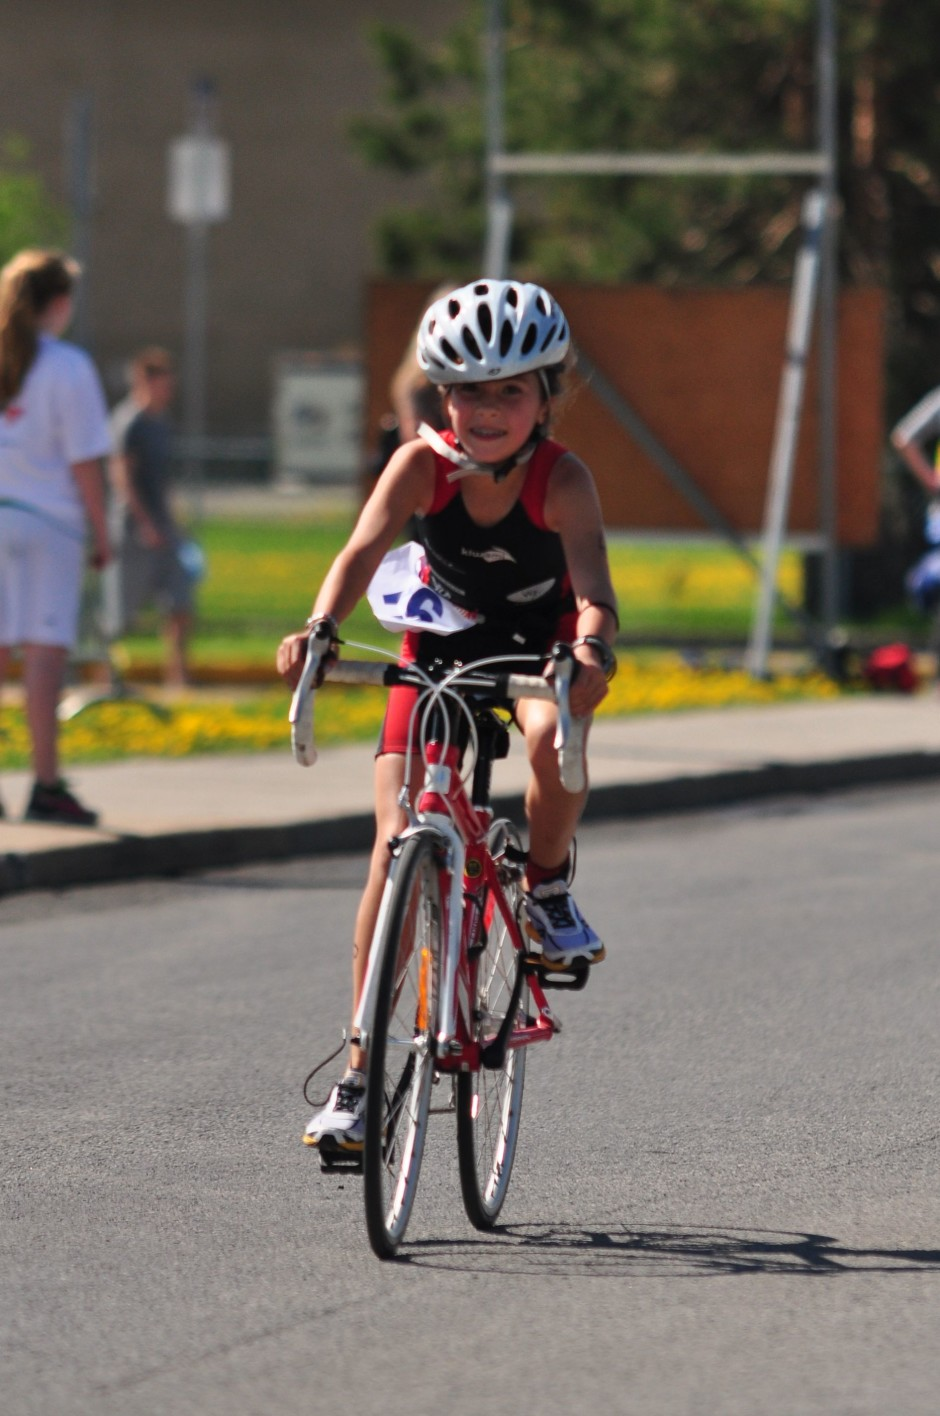 Tribut triathlon scolaire - 11